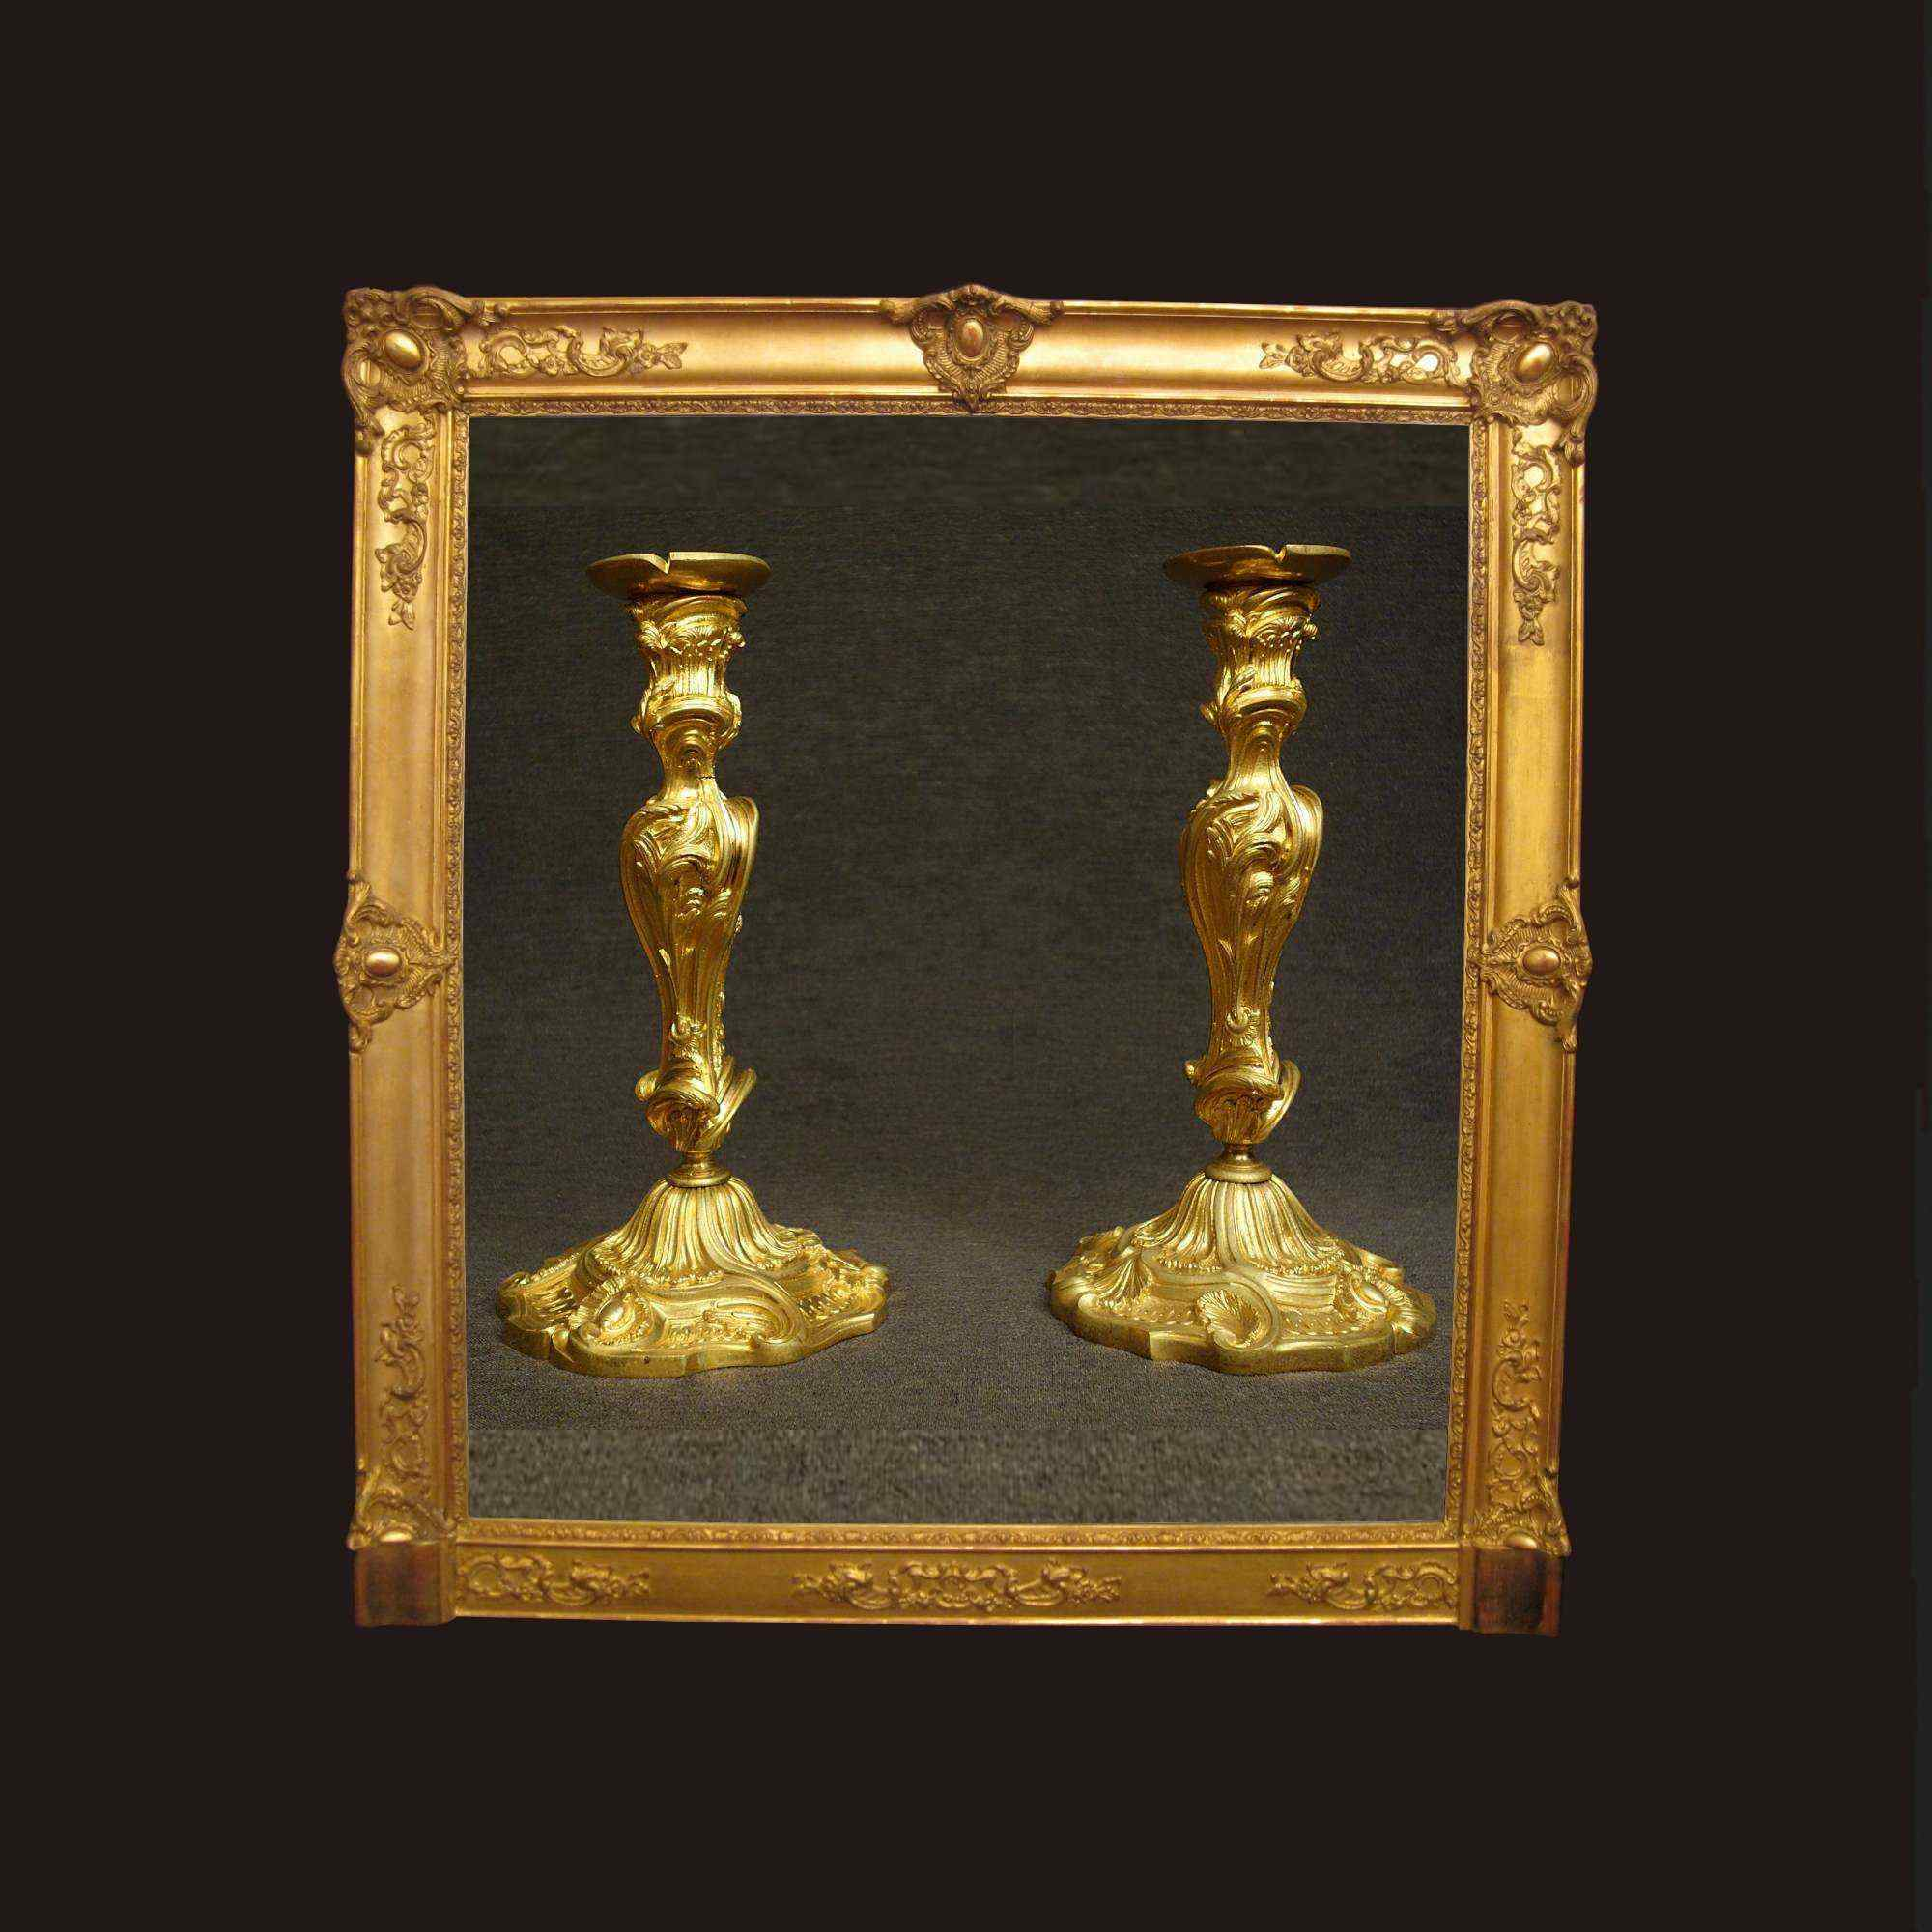 Rare Pair of Bronze Torches XIXth Century, Picard